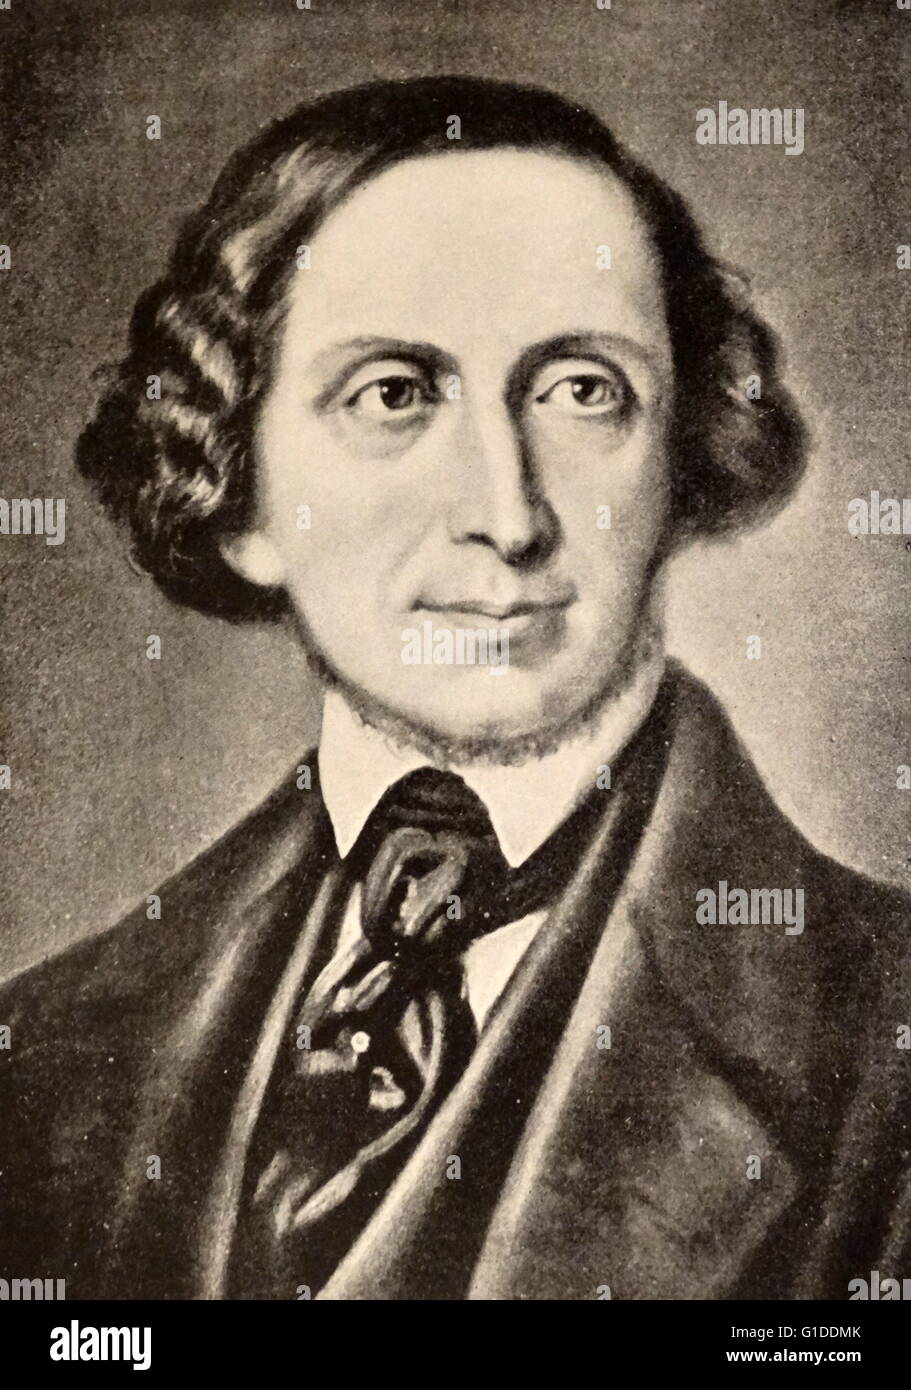 Portrait of Hans Christian Andersen (1805-1875) a Danish author. Dated 19th  Century